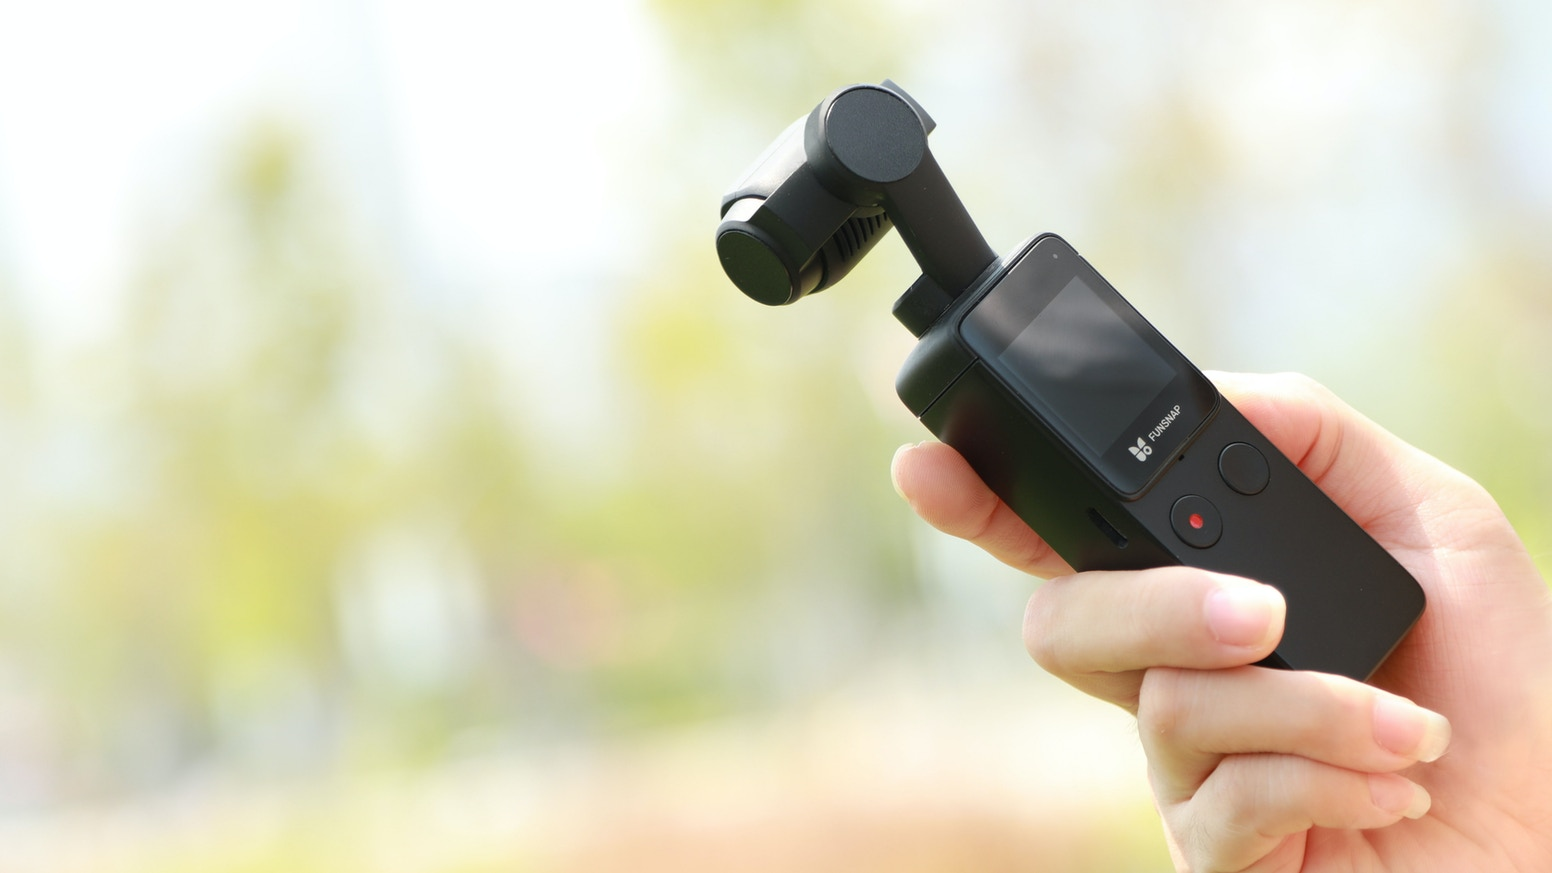 Our pocket-sized 4K camera has voice control, external mic support and is extremely affordable.